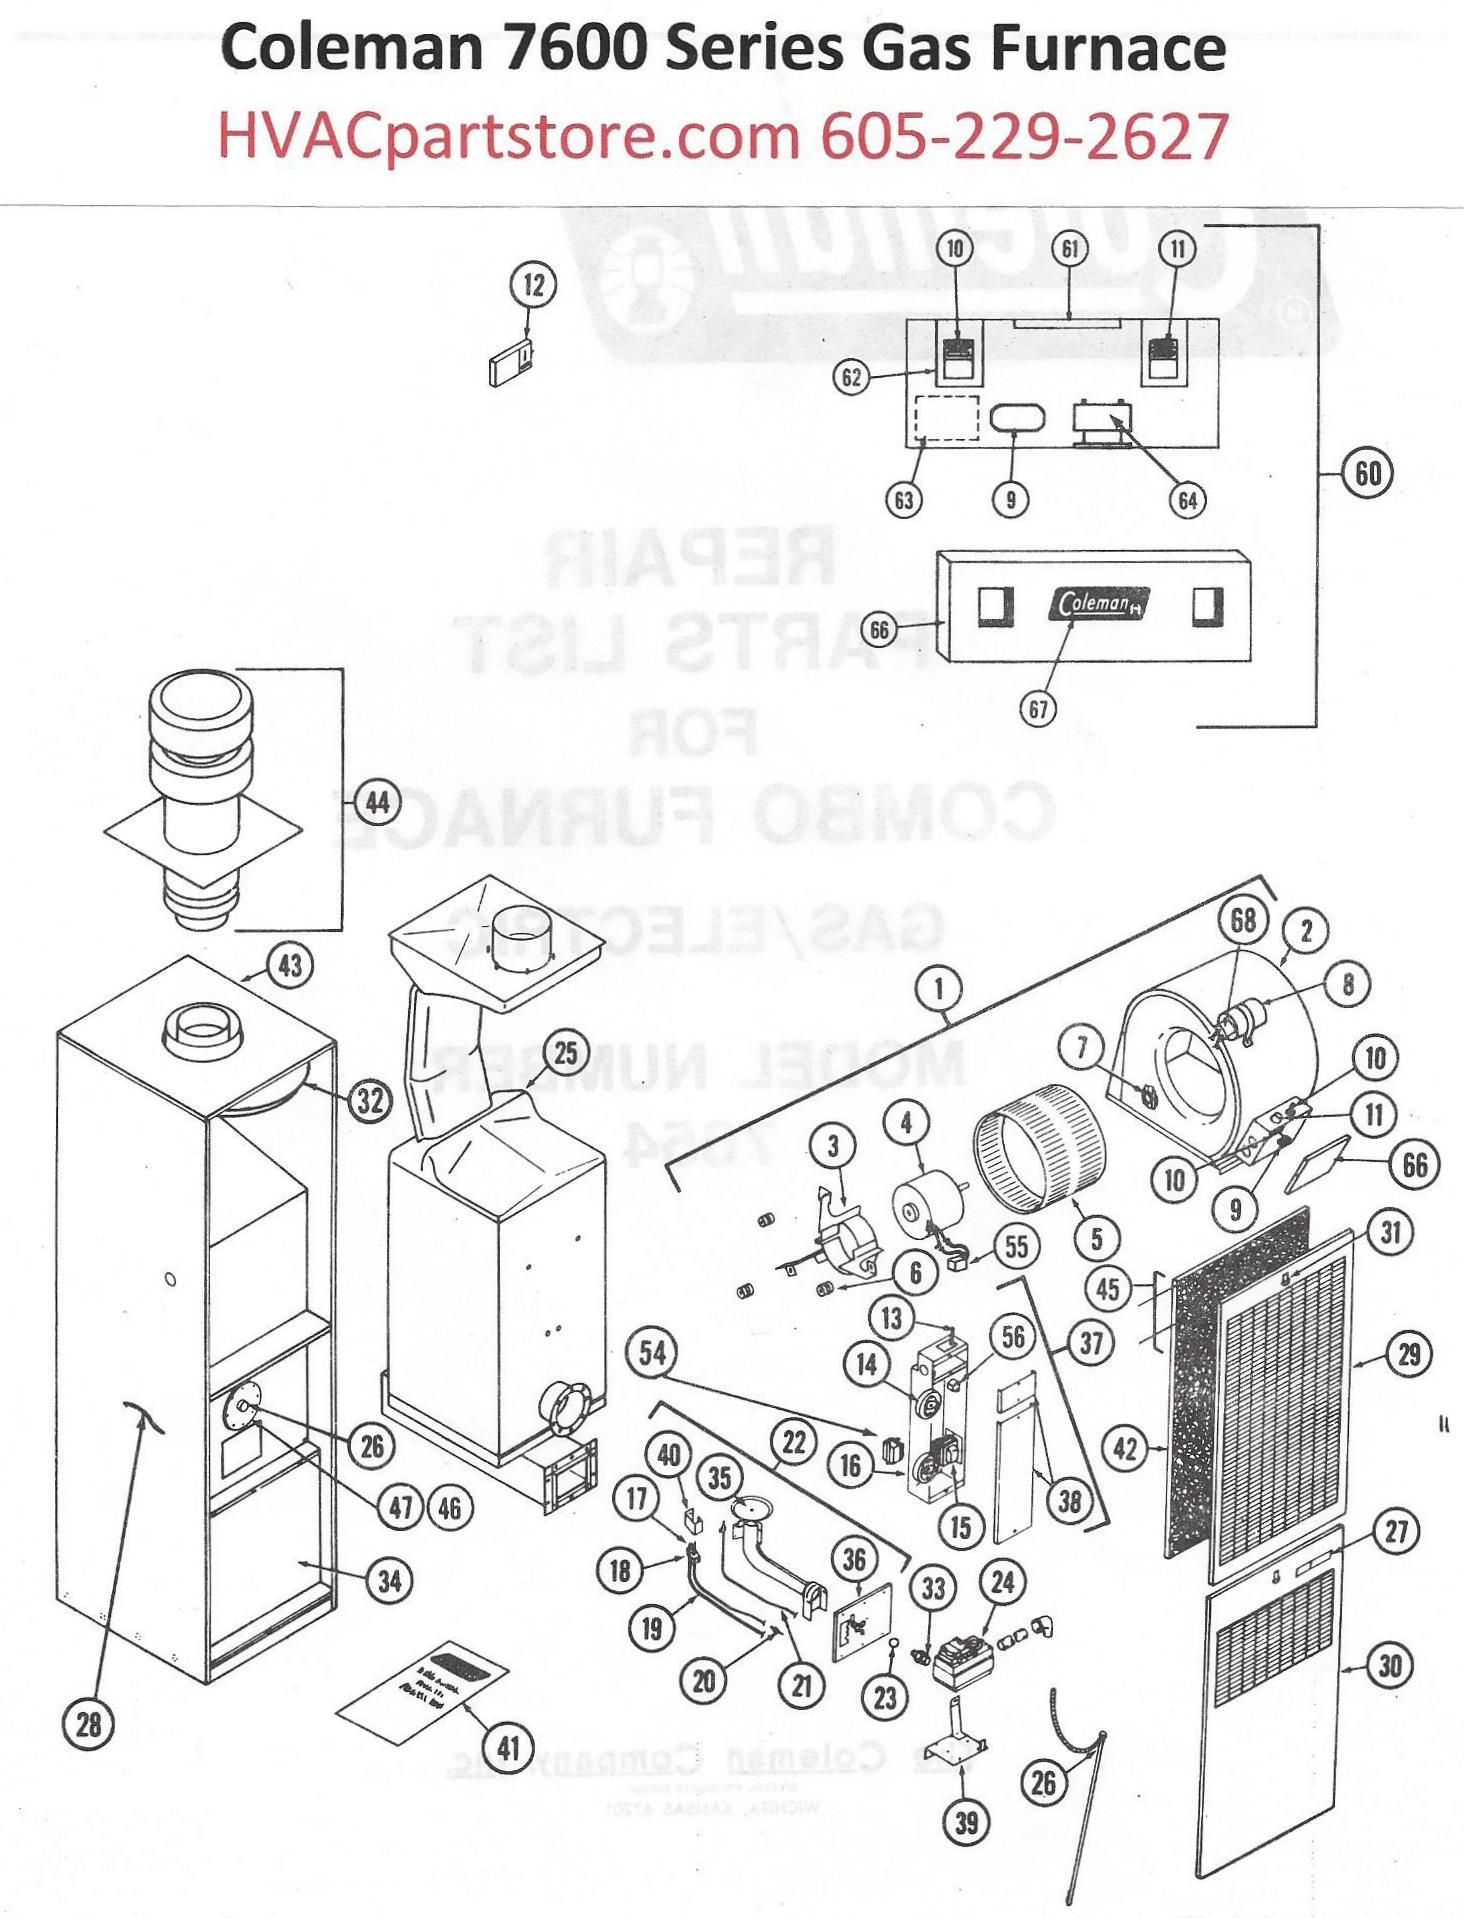 Coleman 7900 Furnace Wiring Diagram : 35 Wiring Diagram